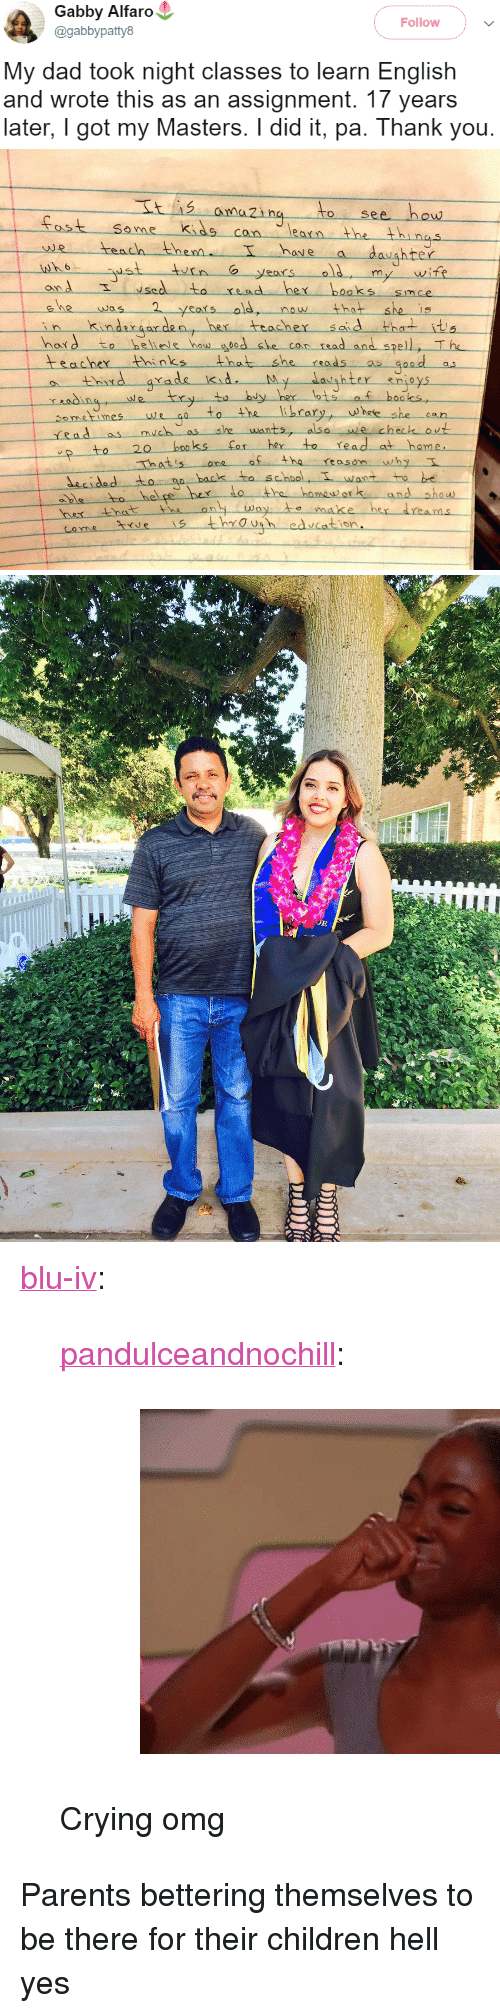 "Children, Crying, and Dad: Gabby Alfaro  @gabbypatty8  Follow  My dad took night classes to learn English  and wrote this as an assignment. 17 years  later, I got my Masters. I did it, pa. Thank you.   to see how  ost Se me kids cn lean the thi nas  earn  hove a  we teach then  onA  hord to heliele hau edshe c  have  hrer  6  my wife  sedto read her boaks smce  was  kndror den, he tracher s d thets  eMe  now that  can rsad and spell, T he  teacher Hhinksthat she ads d  y her lots f hooks,  thid arade kid  y,--whee-she-can  Sometimeswe  rRad as  20 booss for her to read at home  hatisone o the reason why  decidedto s  backs to school, T want to be  hel pe hex lo the homewor and show  es through edcation <p><a href=""http://blu-iv.tumblr.com/post/164808374485/pandulceandnochill-crying-omg"" class=""tumblr_blog"">blu-iv</a>:</p><blockquote> <p><a href=""https://pandulceandnochill.tumblr.com/post/163909331164"" class=""tumblr_blog"">pandulceandnochill</a>:</p> <blockquote><figure class=""tmblr-full"" data-orig-width=""460"" data-orig-height=""345"" data-tumblr-attribution=""charnellecatastrophe:Wg_w7ohn_kgydqkokr629w:ZOzoGy1hNCsh2"" data-orig-src=""https://78.media.tumblr.com/52efffad03f7fcef53708c2062ee4306/tumblr_nm63ds5g3M1qcs7p4o1_500.gif""><img src=""https://78.media.tumblr.com/52efffad03f7fcef53708c2062ee4306/tumblr_inline_oubo68udOk1uy5ehh_540.gif"" data-orig-width=""460"" data-orig-height=""345"" data-orig-src=""https://78.media.tumblr.com/52efffad03f7fcef53708c2062ee4306/tumblr_nm63ds5g3M1qcs7p4o1_500.gif""/></figure></blockquote>  <p>Crying omg </p> </blockquote>  <p>Parents bettering themselves to be there for their children hell yes</p>"